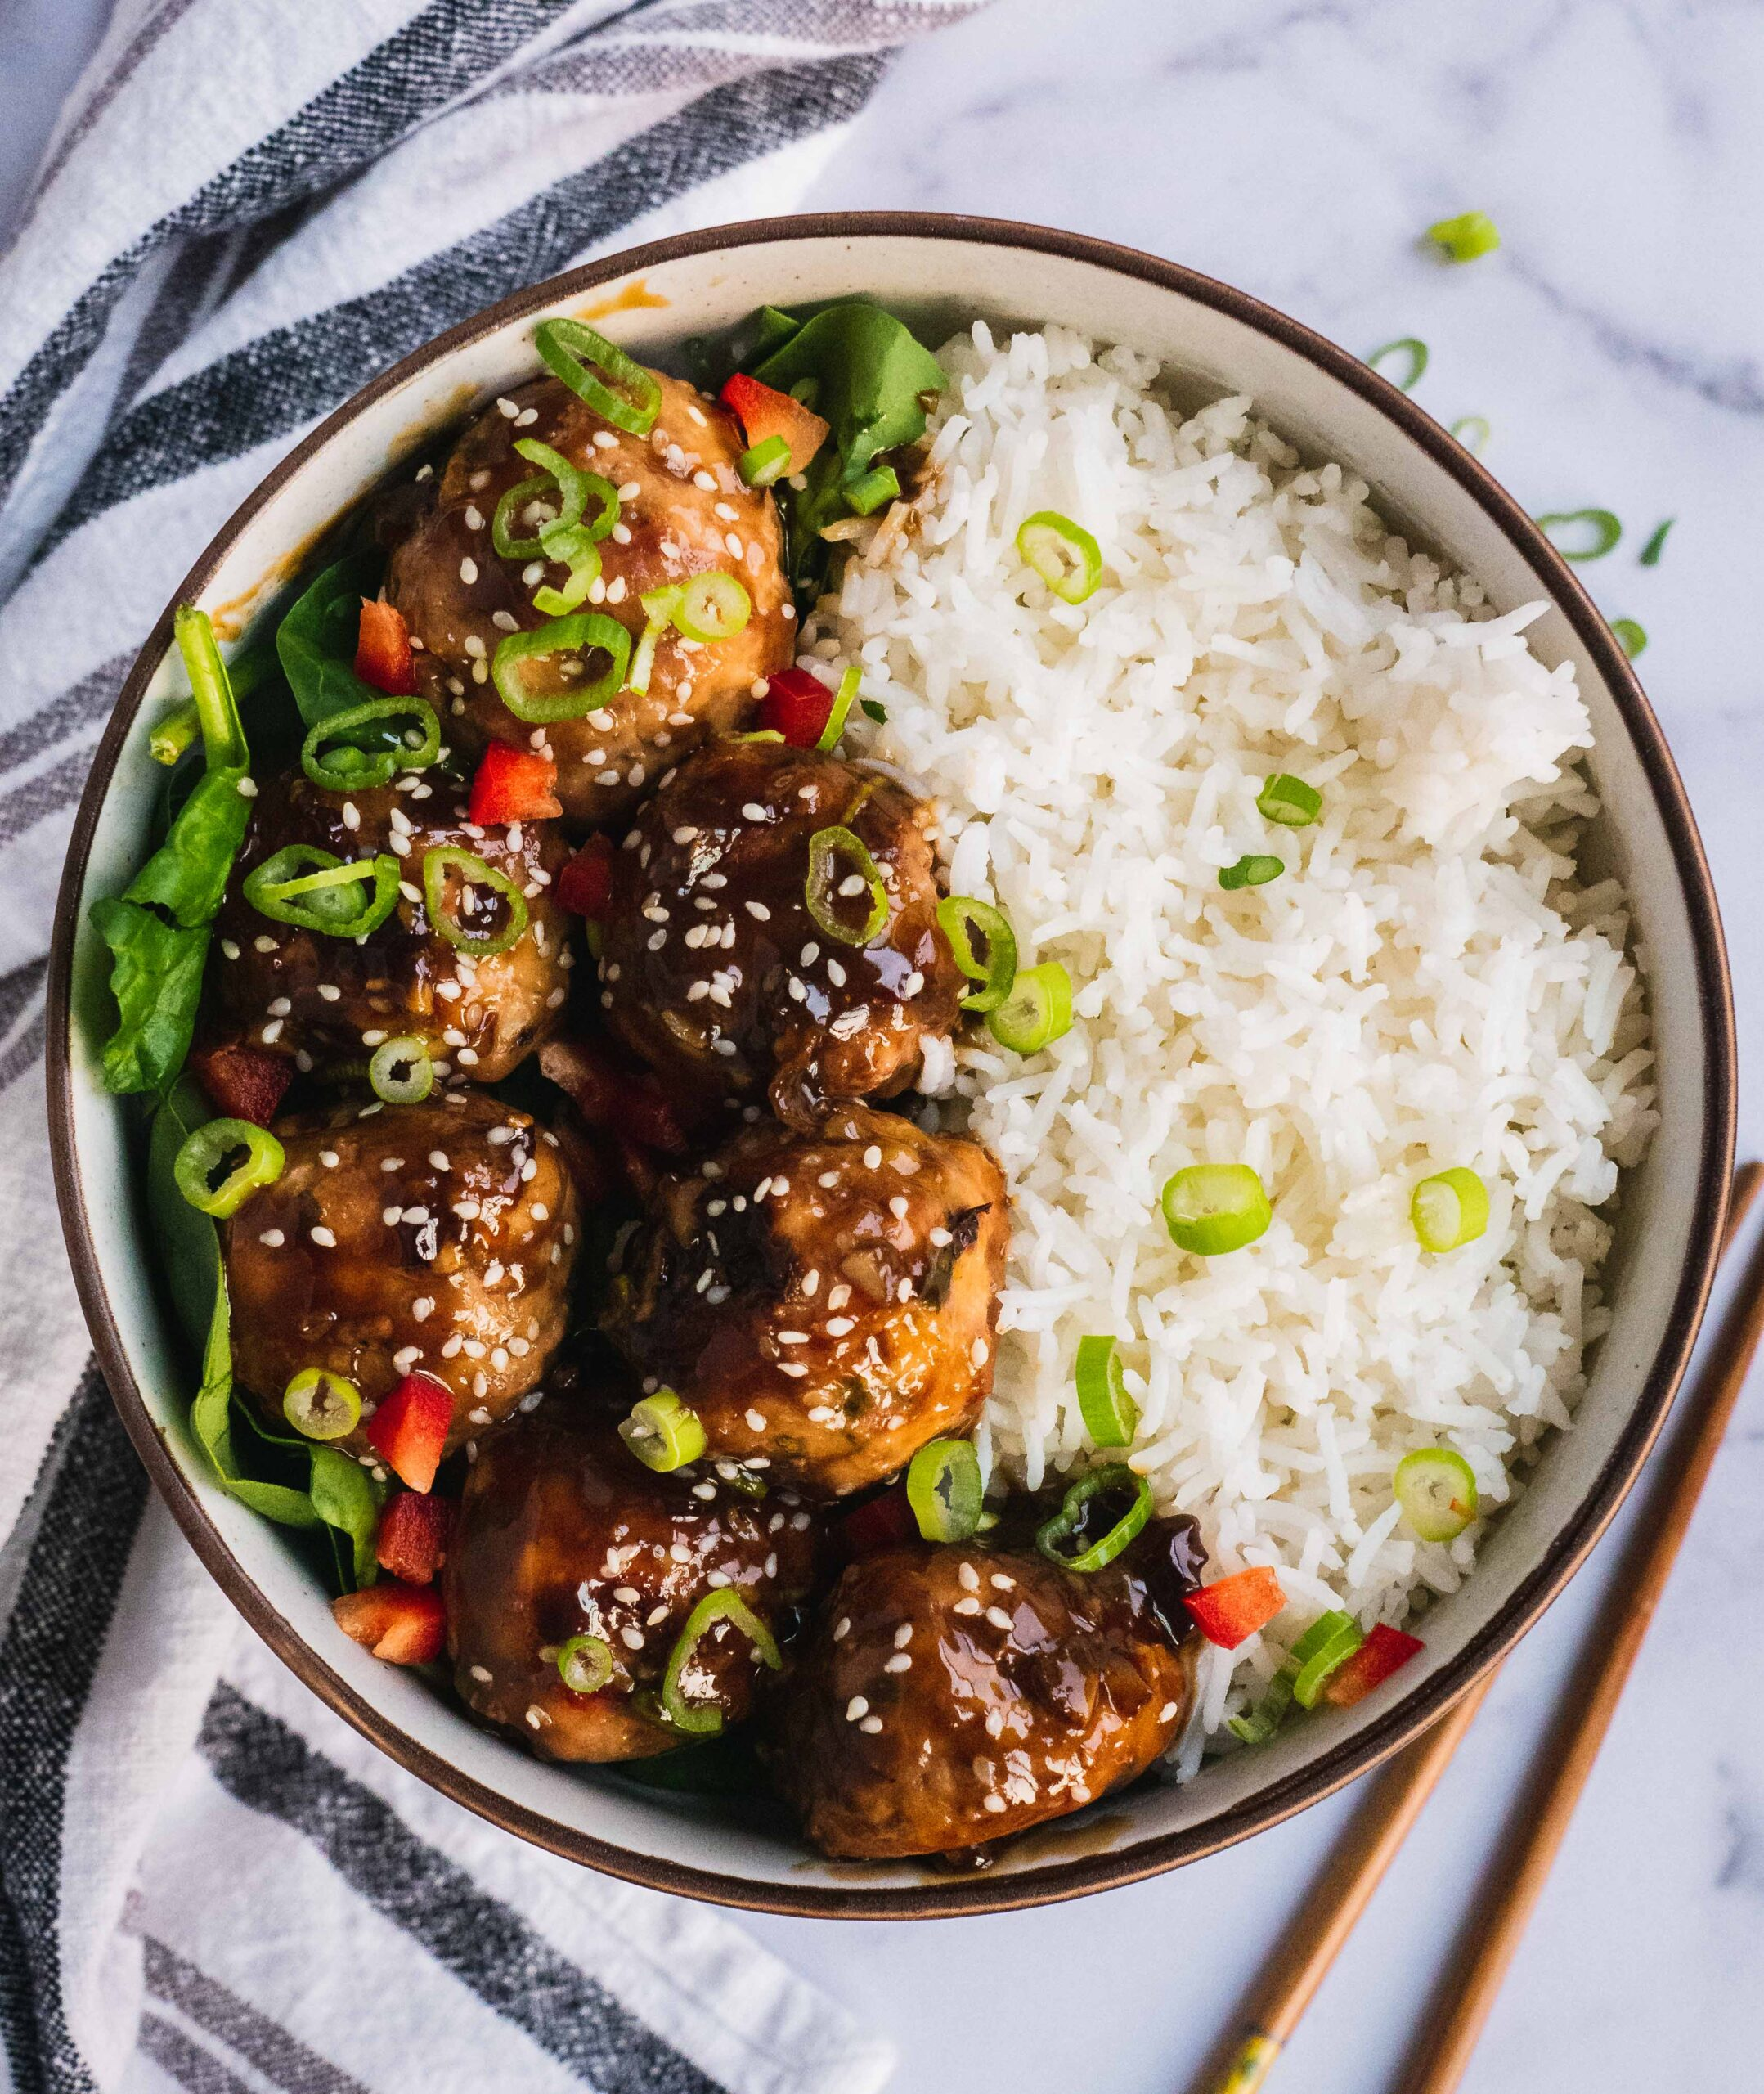 A bowl of sticky asian meatballs served with jasmine rice. The dish is topped off with scallions and some red pepper flakes.